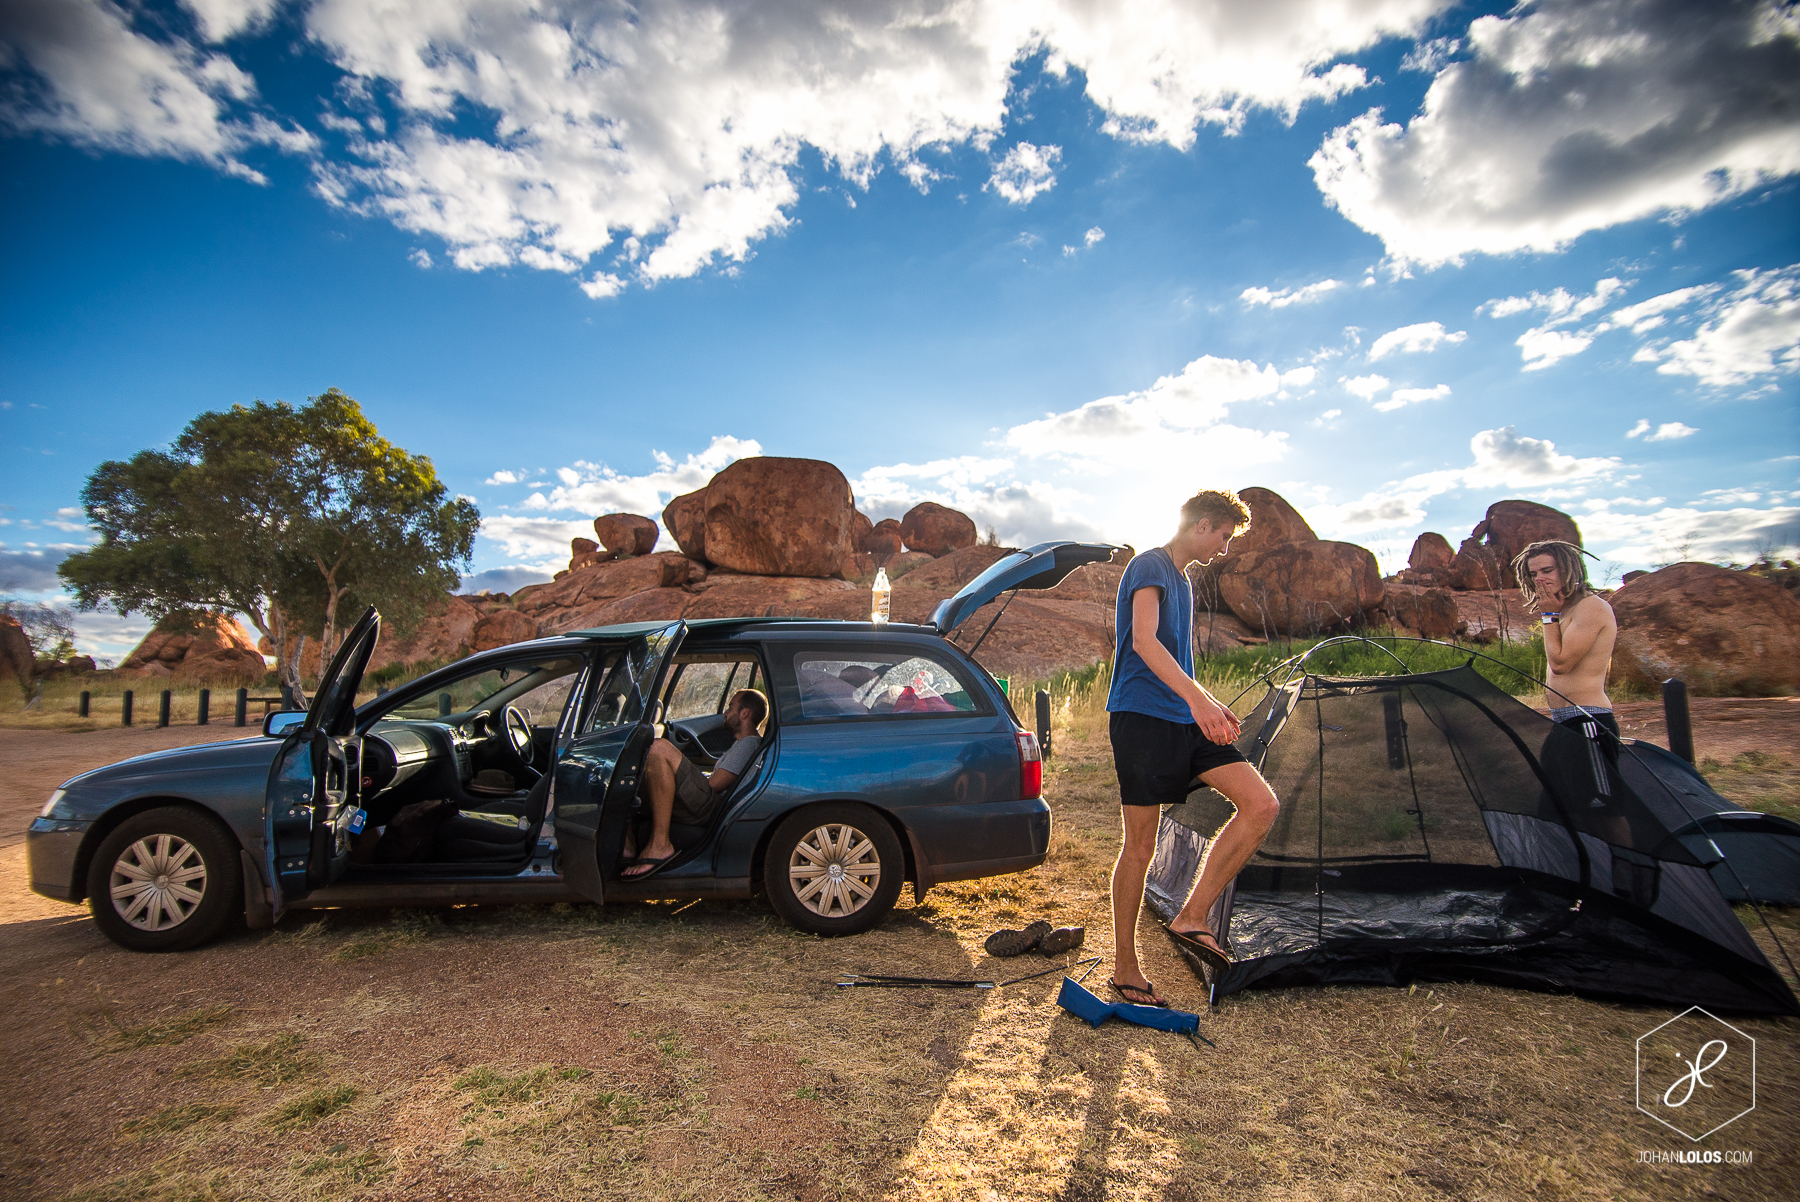 How To Make Renting A Car Quicker